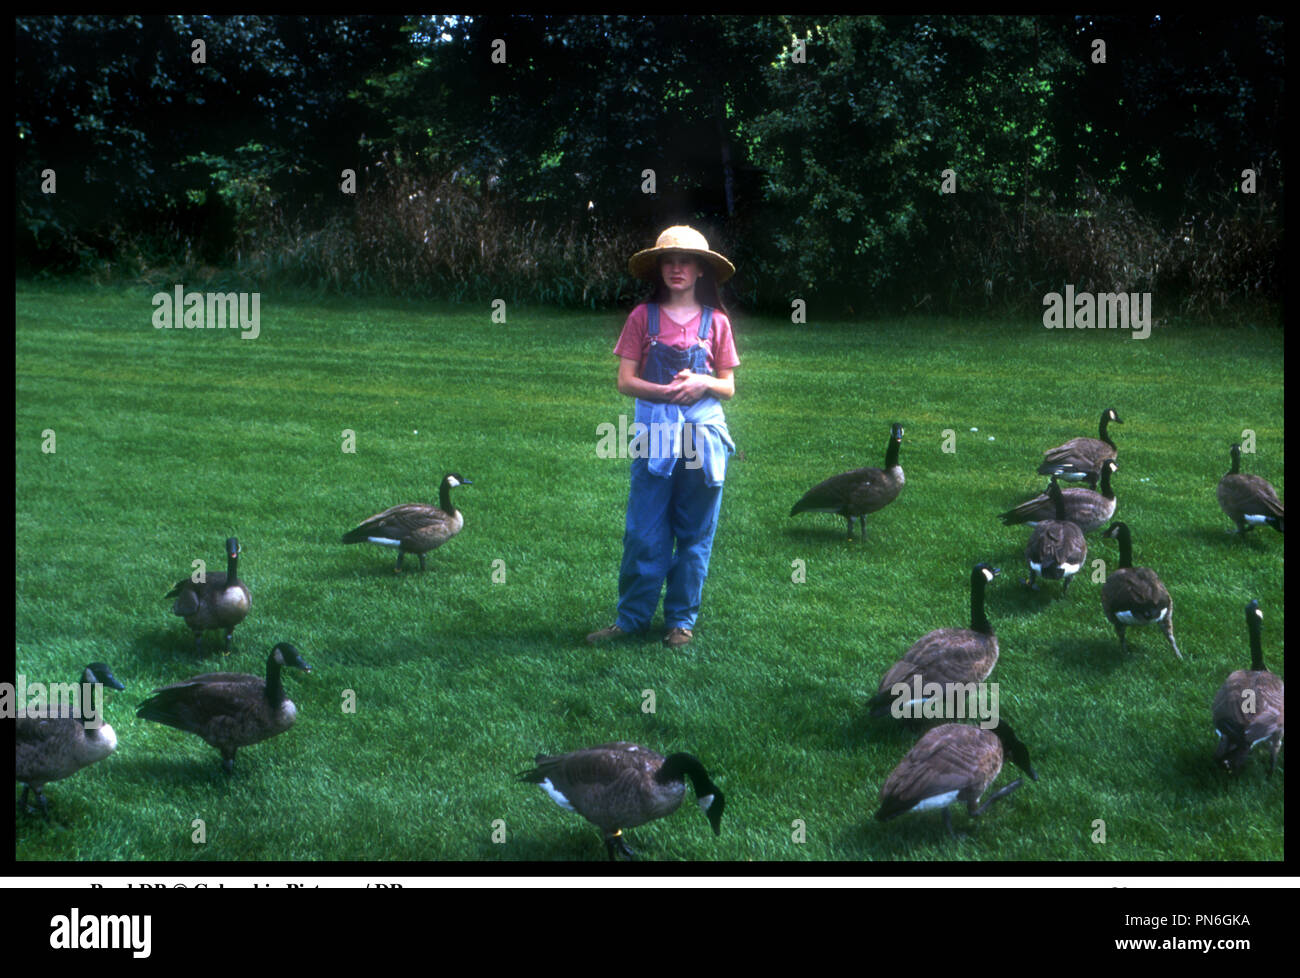 fly away home 1996 anna stock photos fly away home 1996 anna stock images alamy. Black Bedroom Furniture Sets. Home Design Ideas